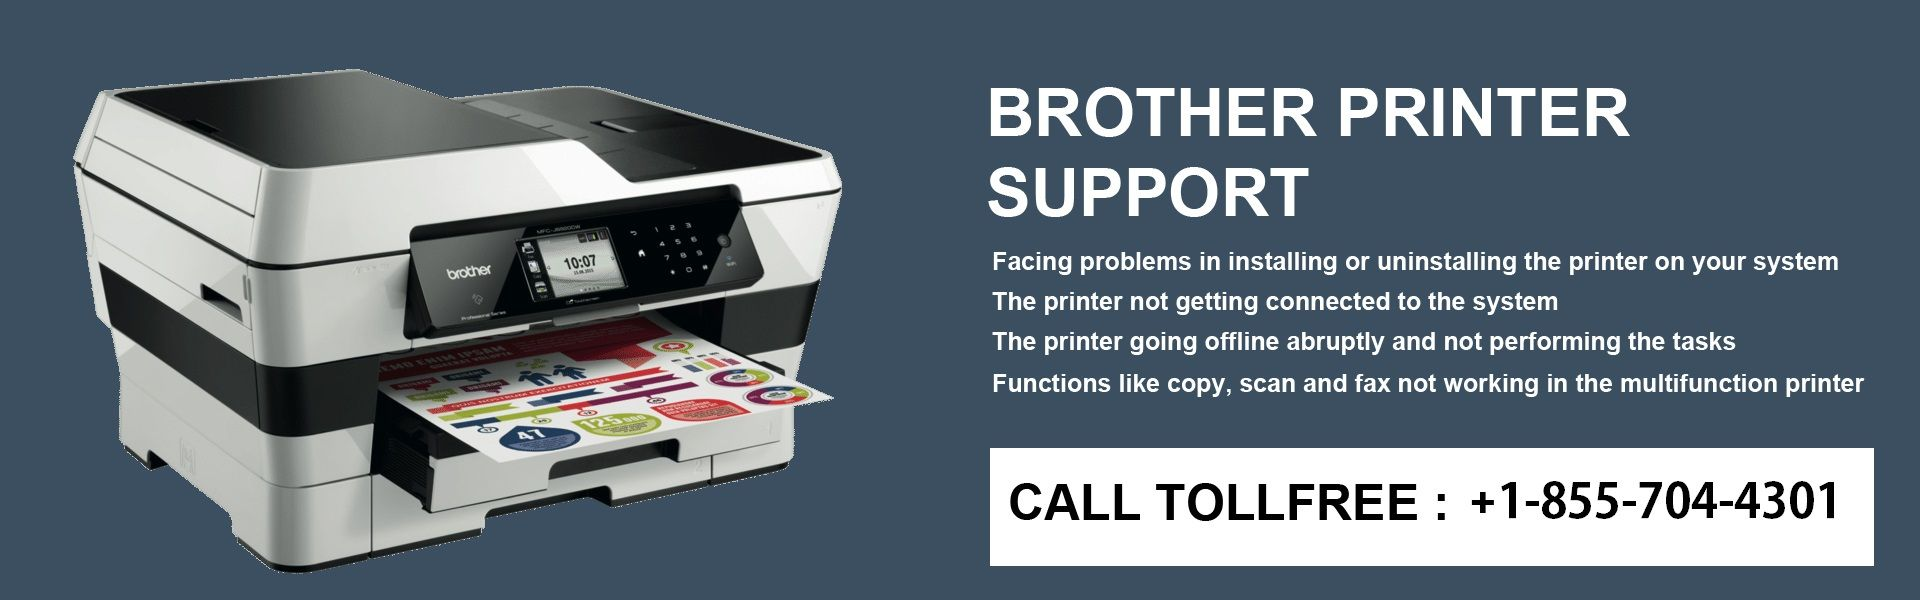 How to update HP Printer Driver? | Printer Support Phone Number